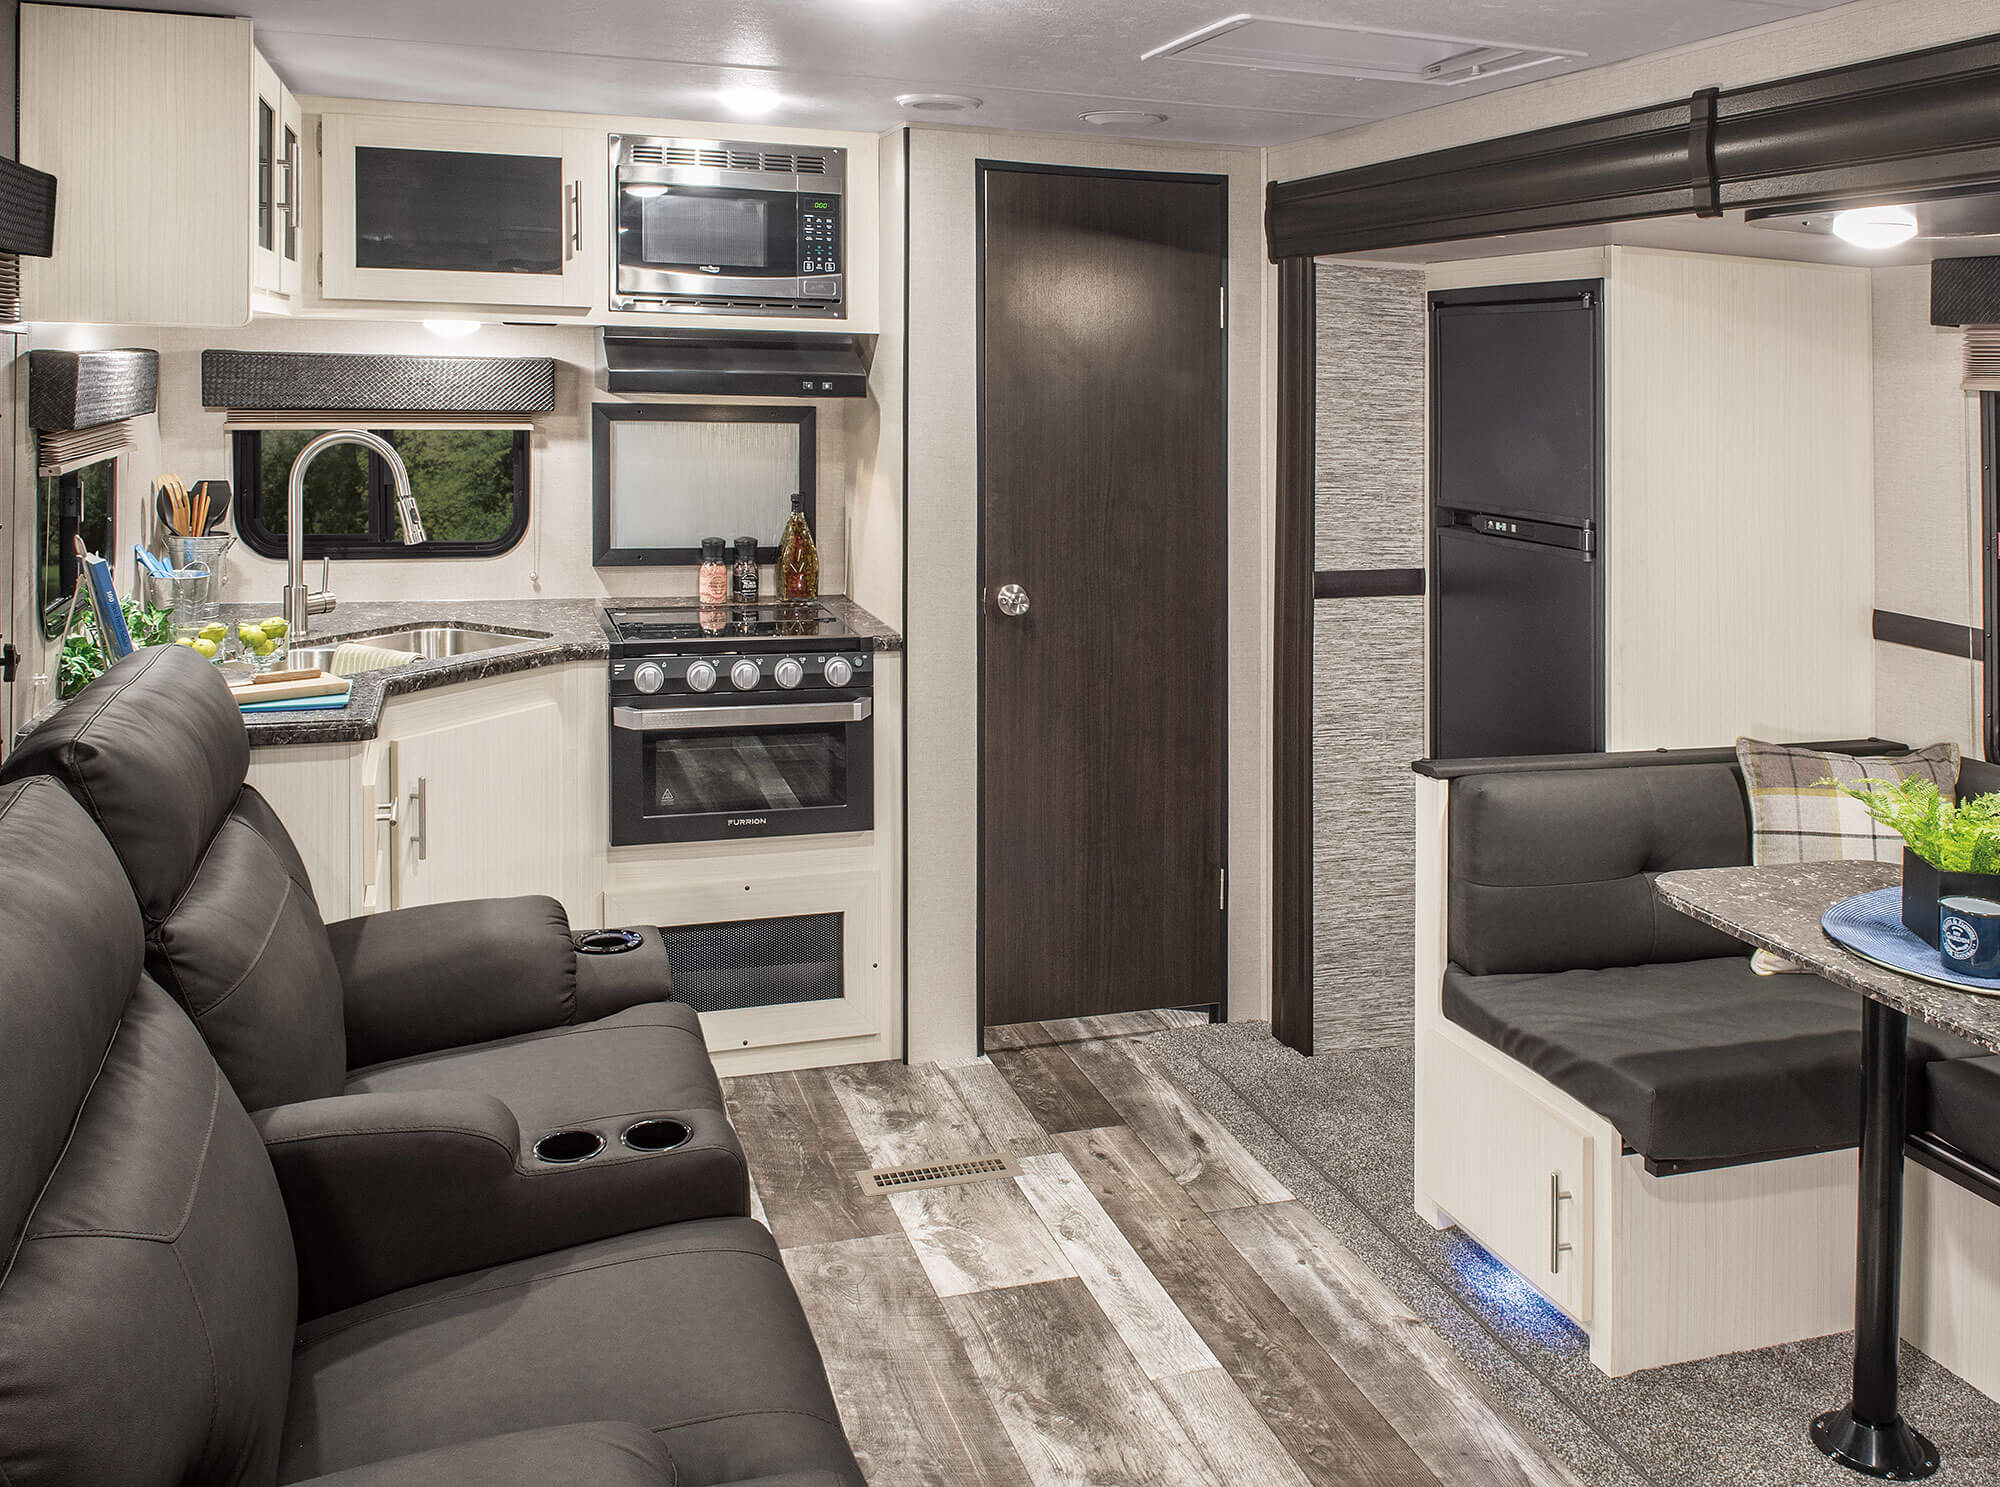 2019 Best In Show Rv News Says It S The Venture Stratus